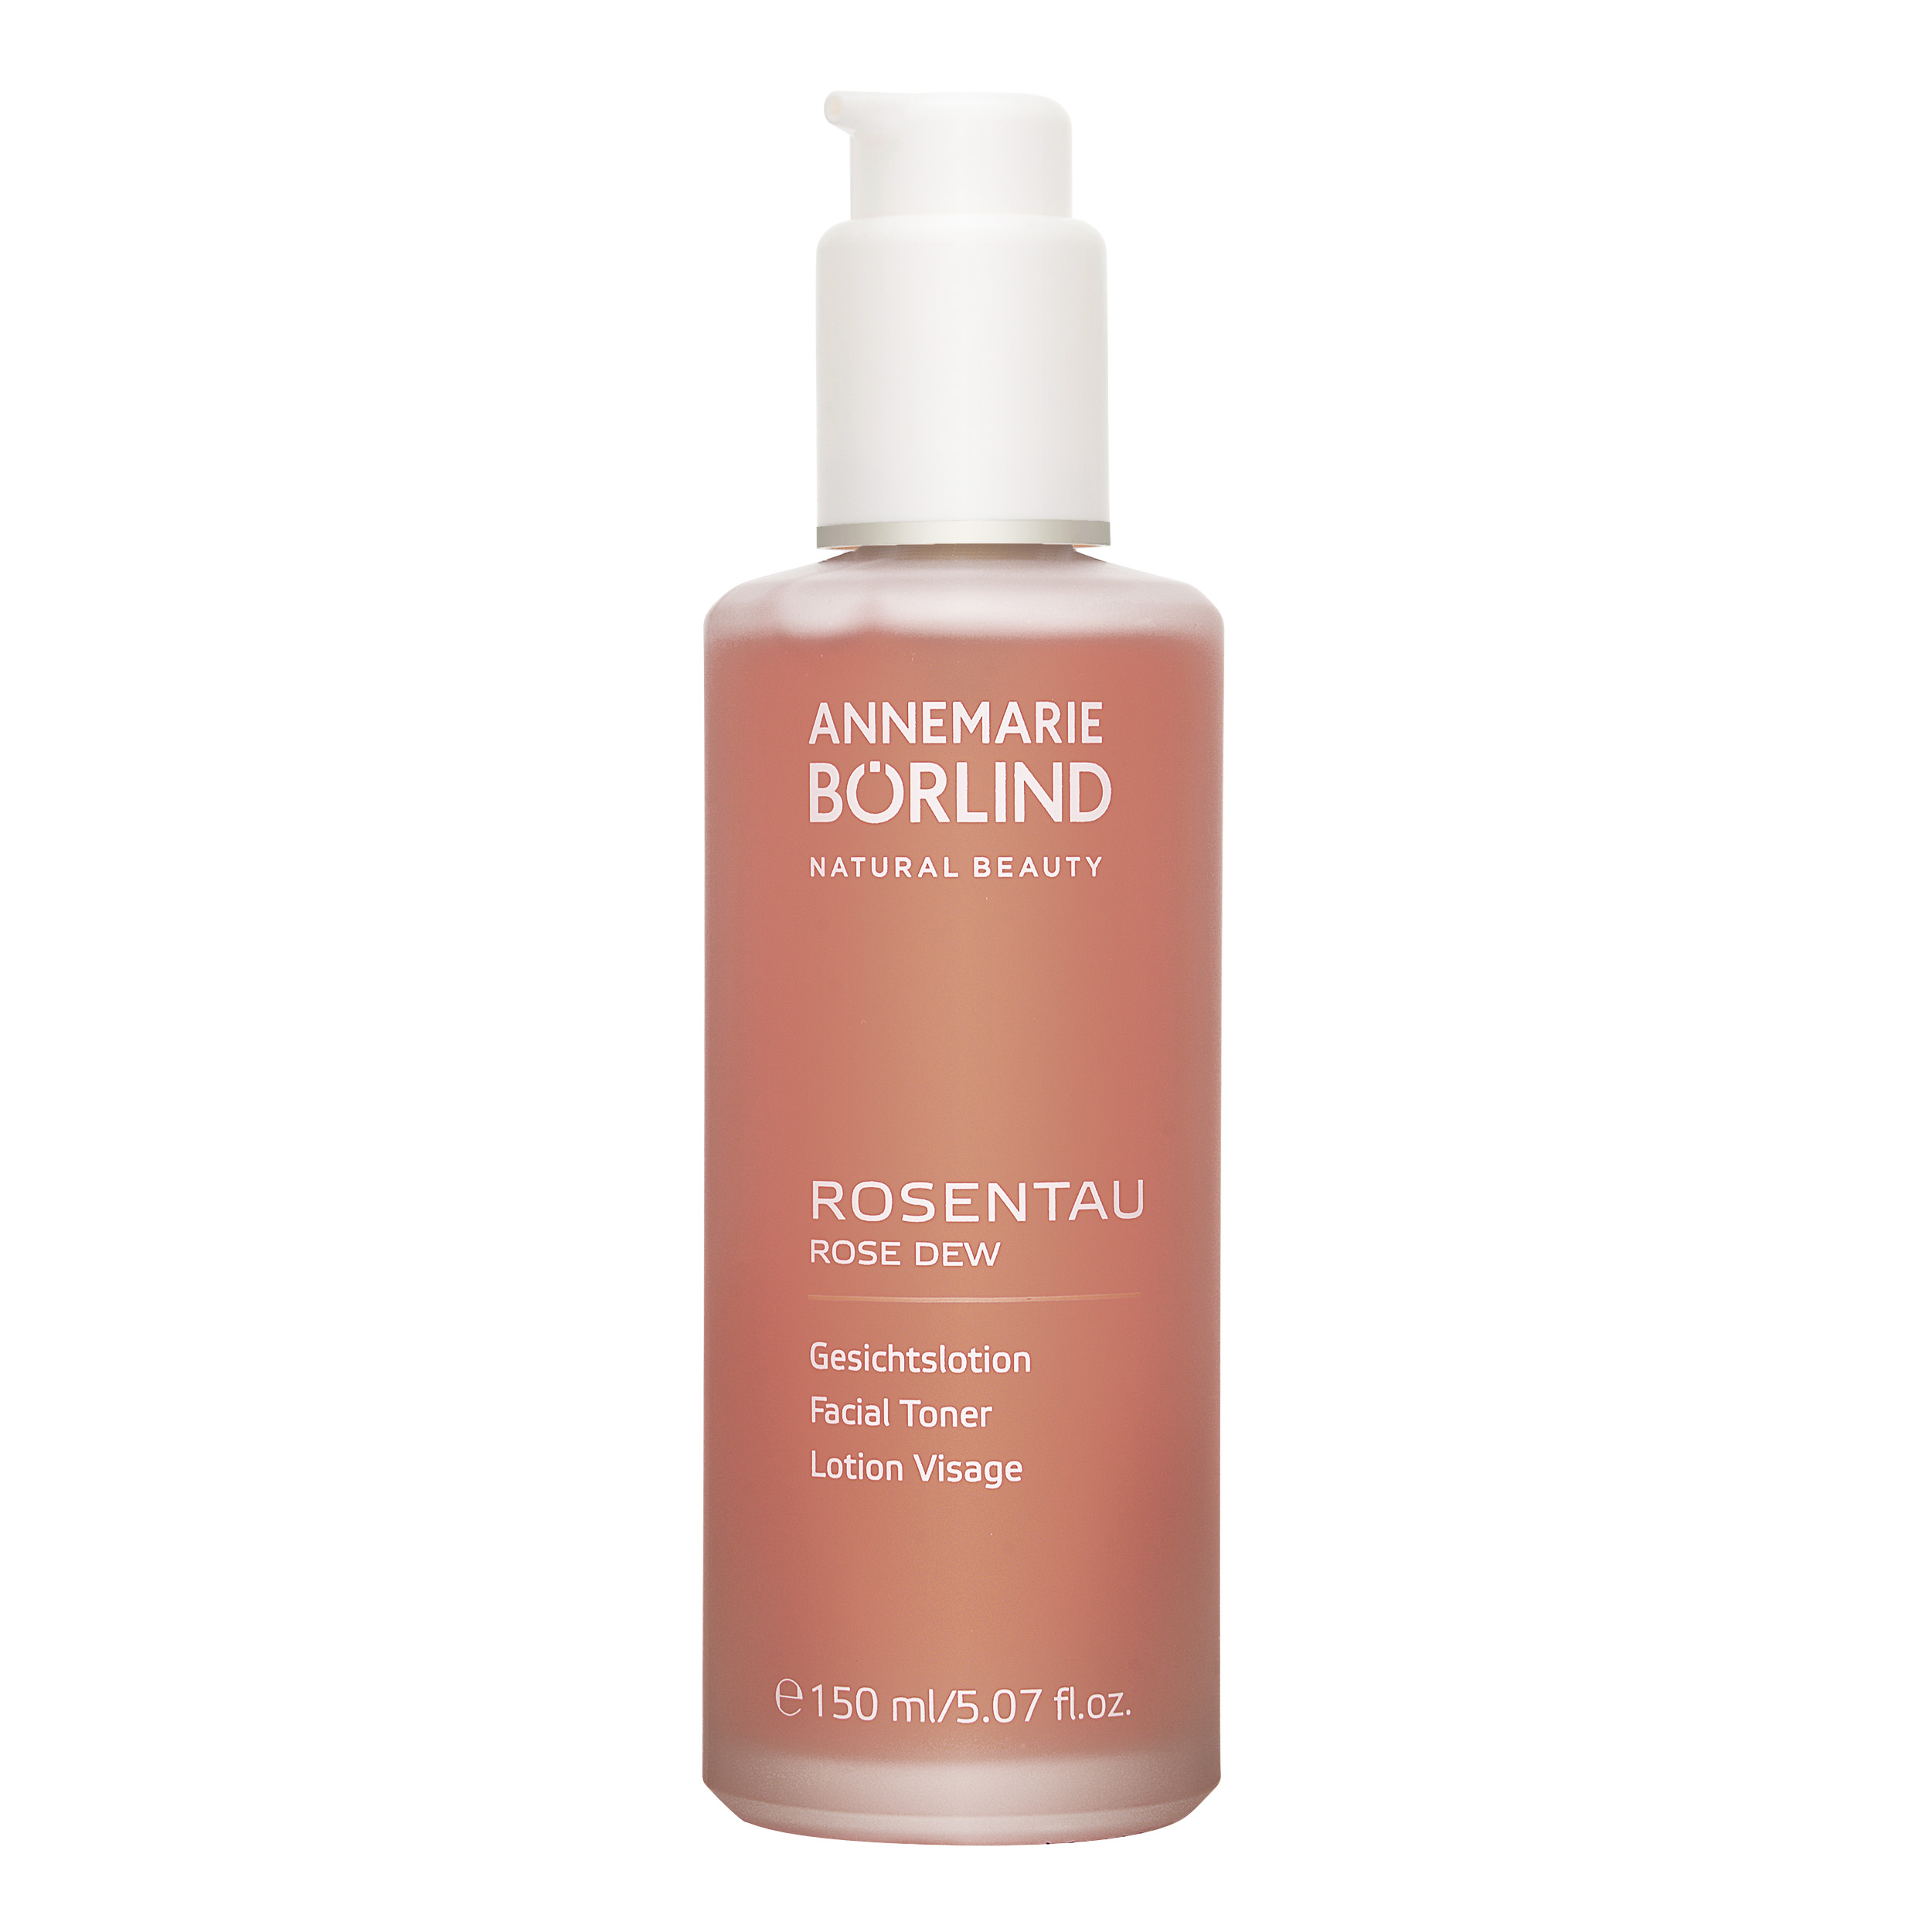 Annemarie Borlind Rose Dew Facial Toner 5.07oz, 150ml